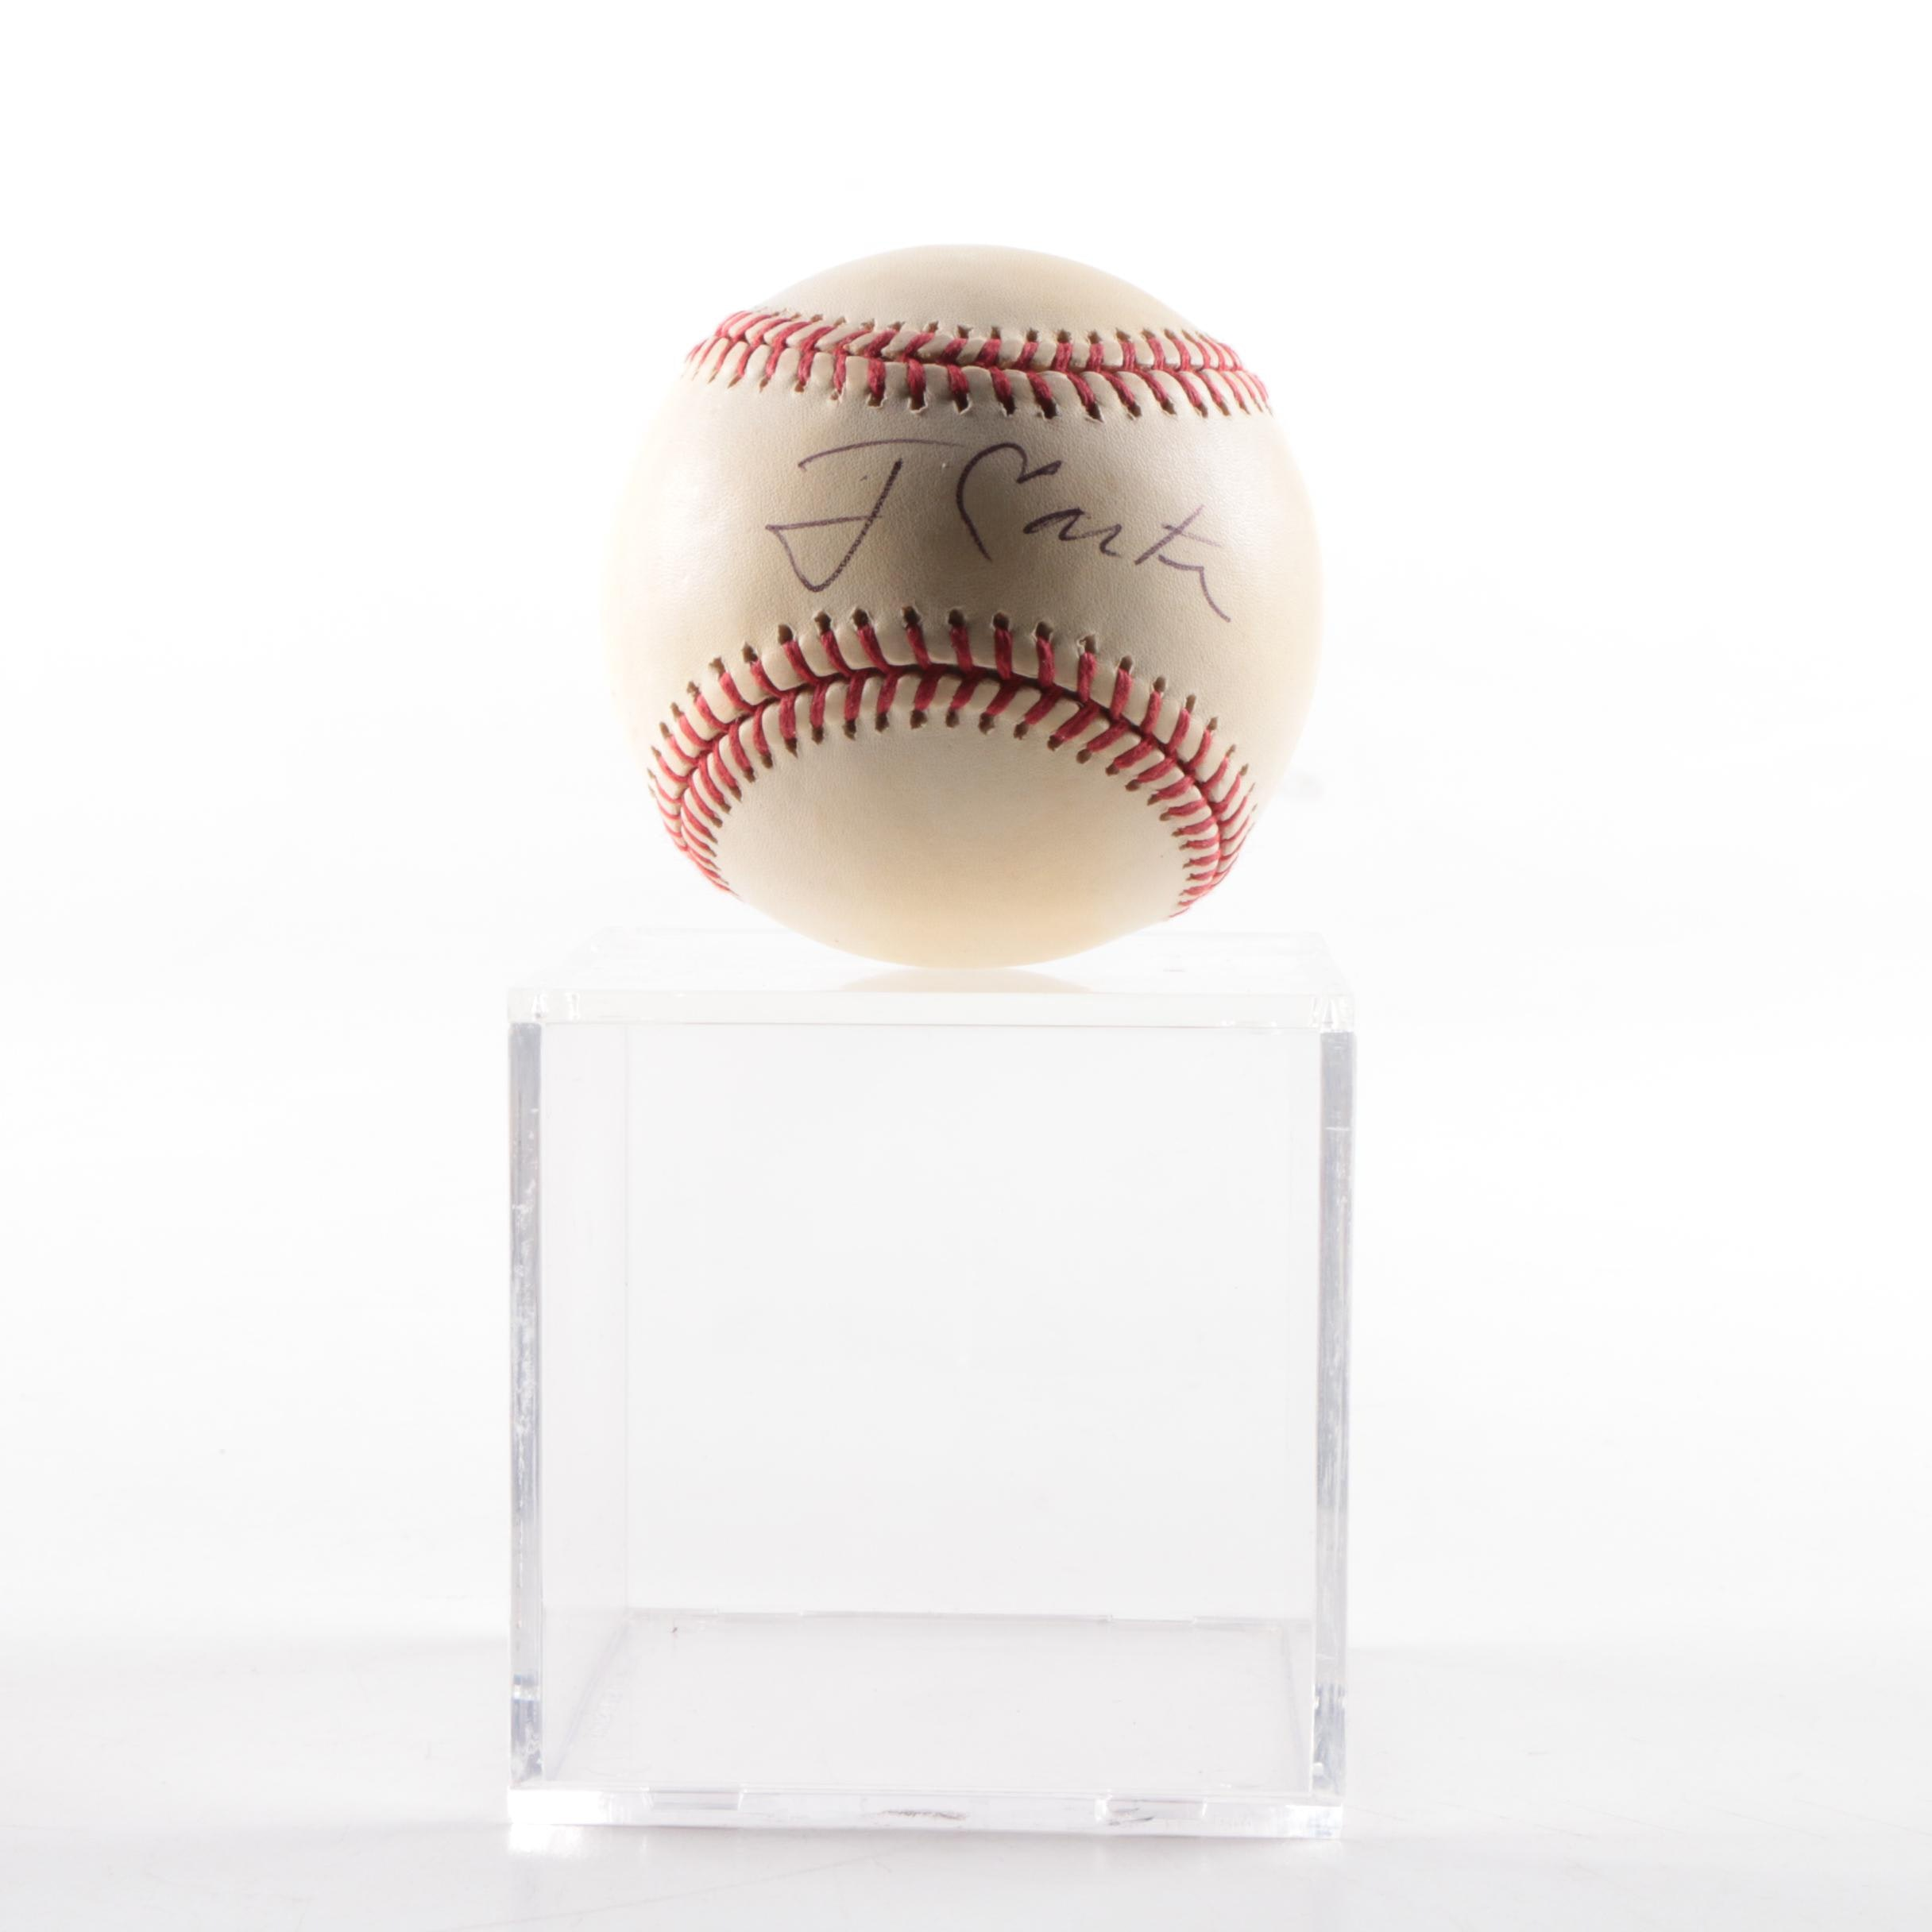 President Jimmy Carter Autographed Baseball In Display Case